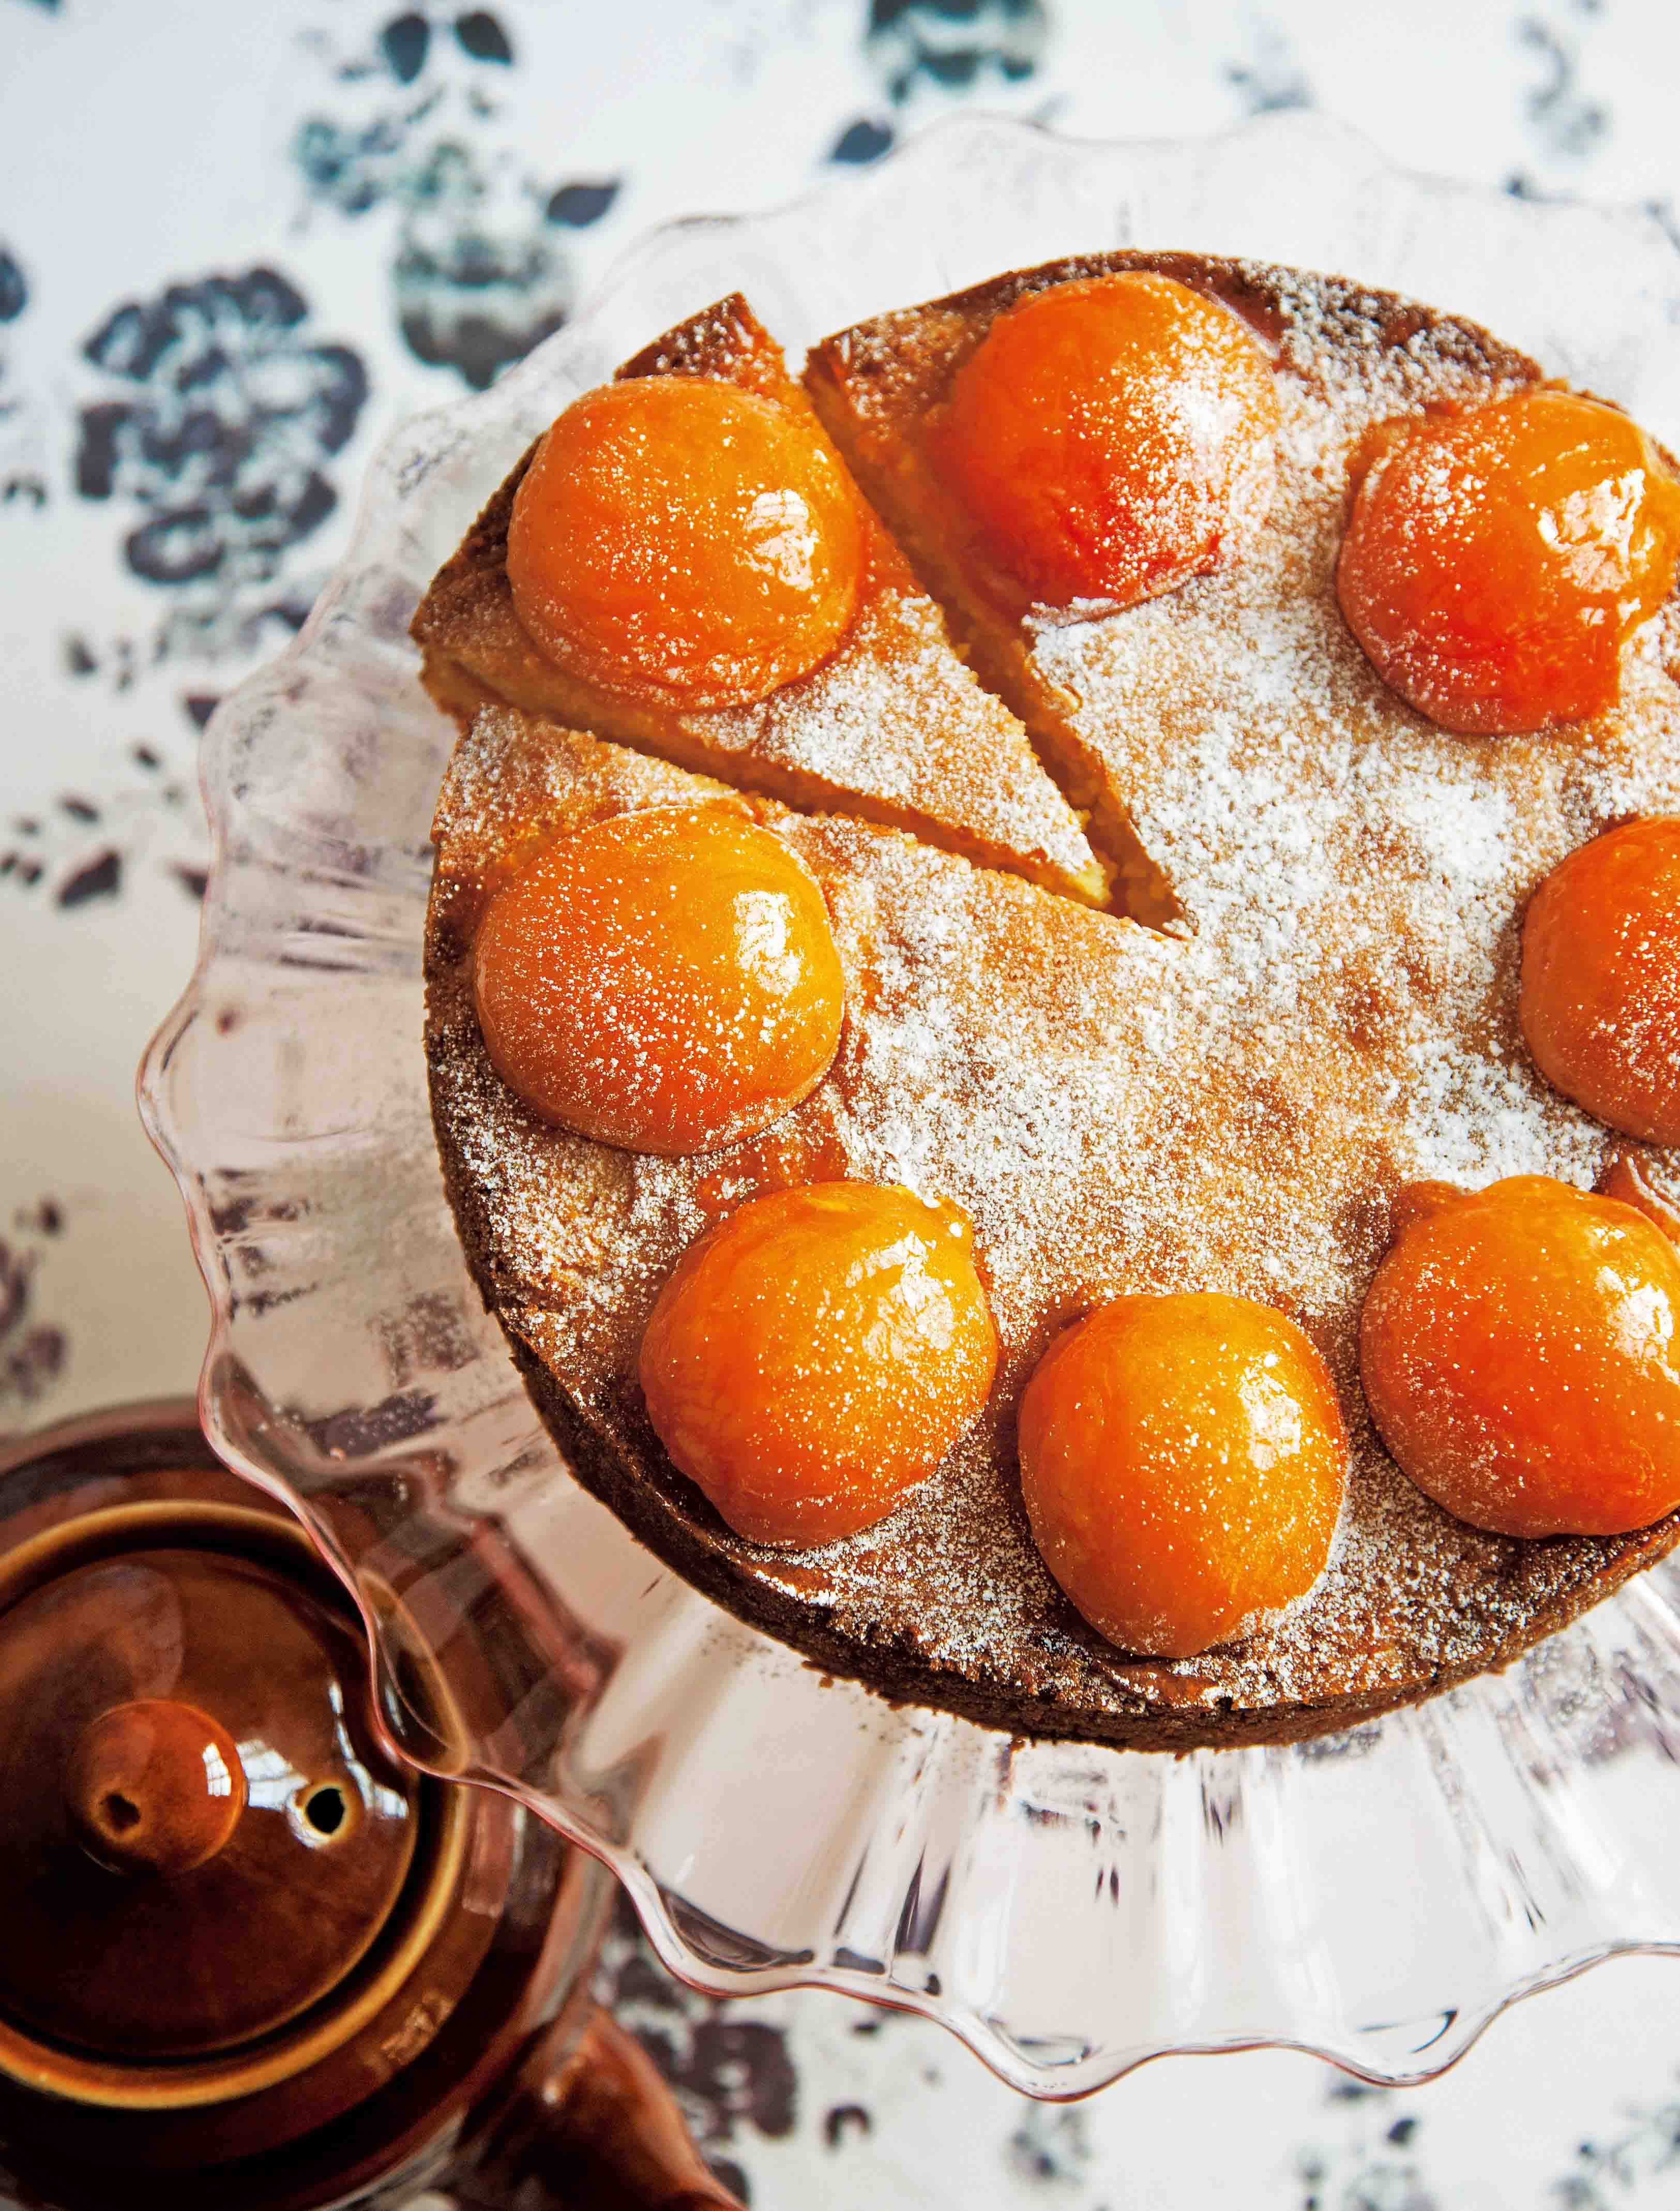 All-in-one apricot and almond cake